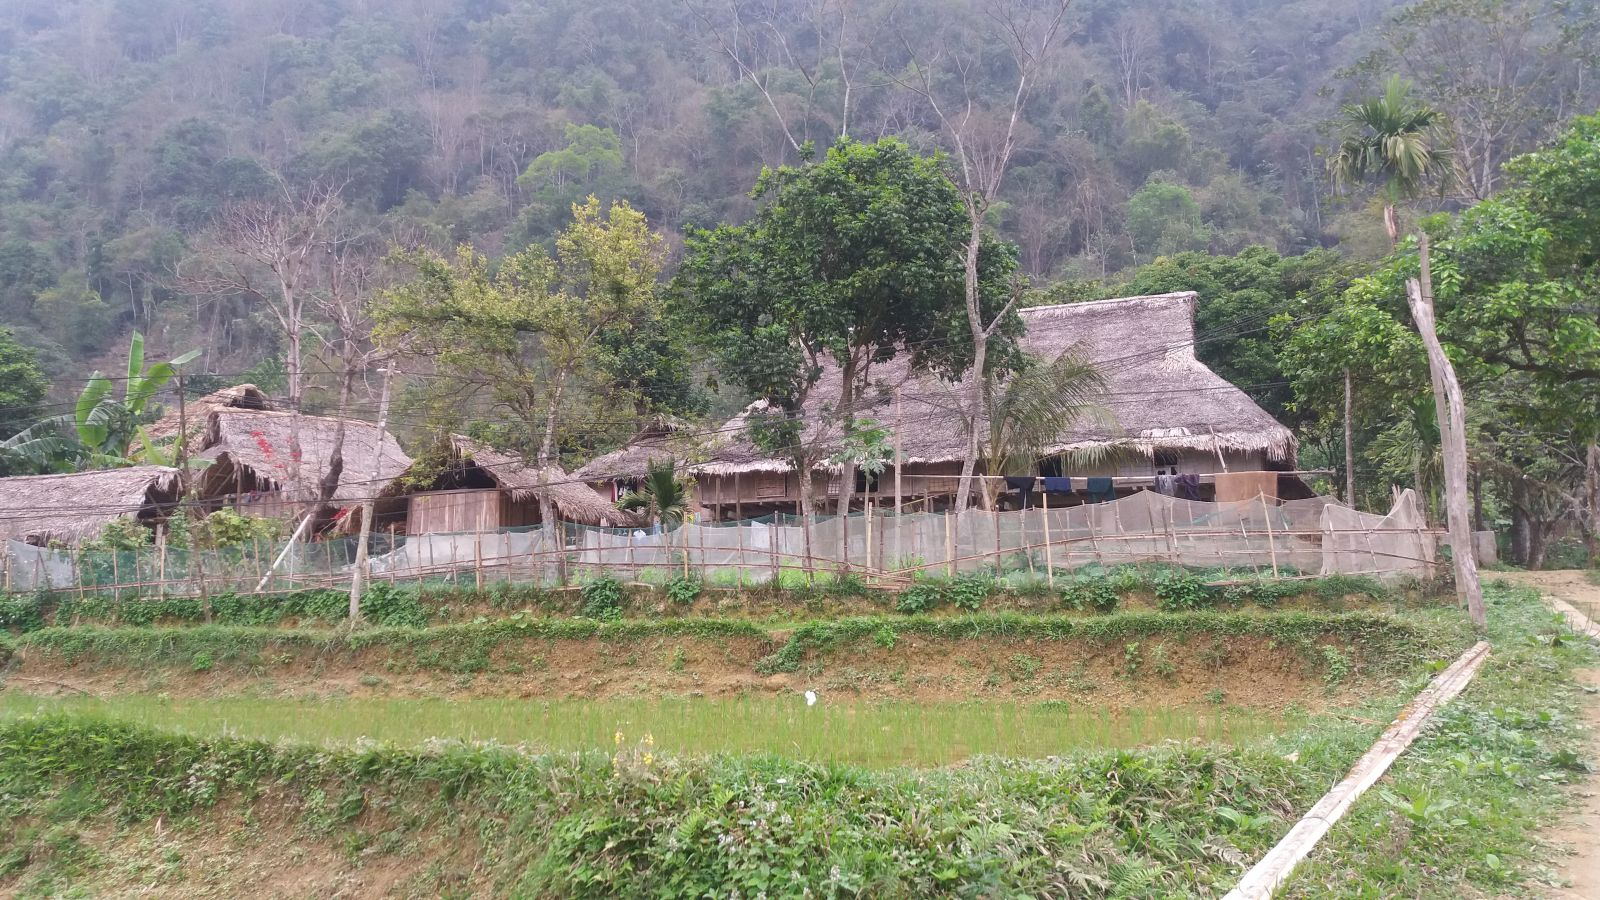 Discover Mai Hich - Pu Luong Nature Reserve 3 days 2 nights